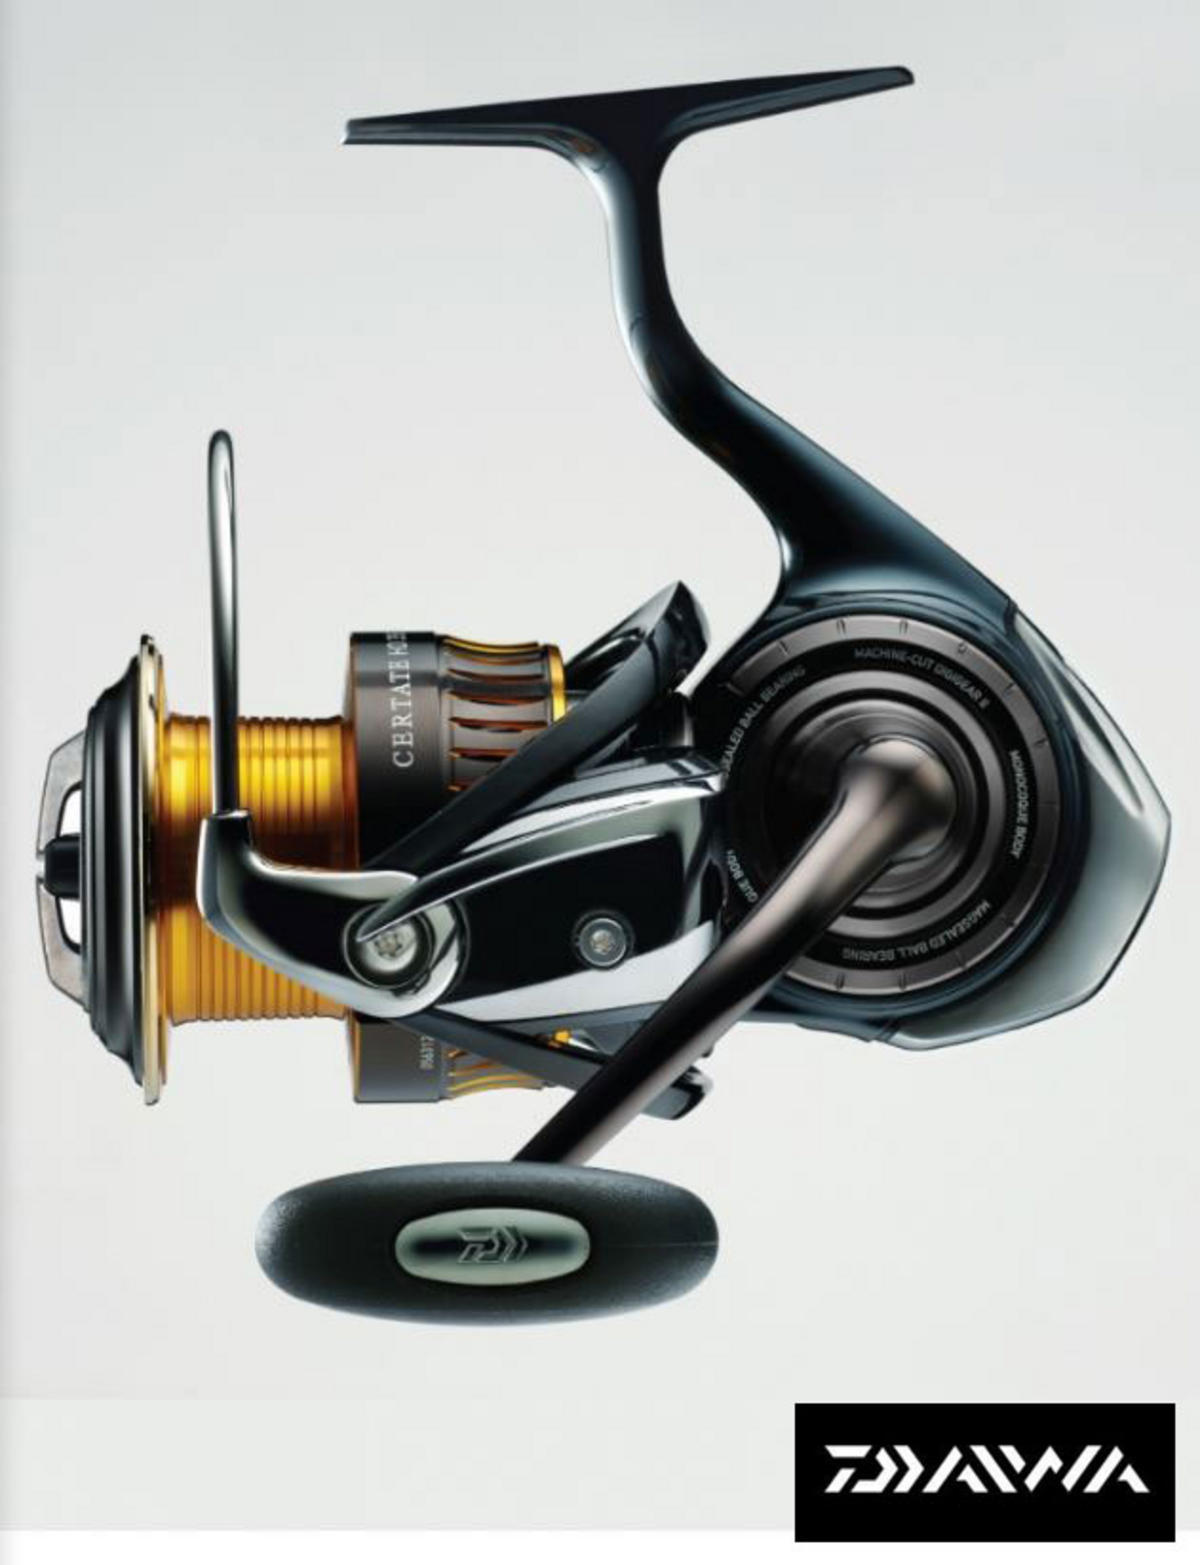 New daiwa 16 certate hd 4000sh spinning reel model no for Daiwa fishing reels